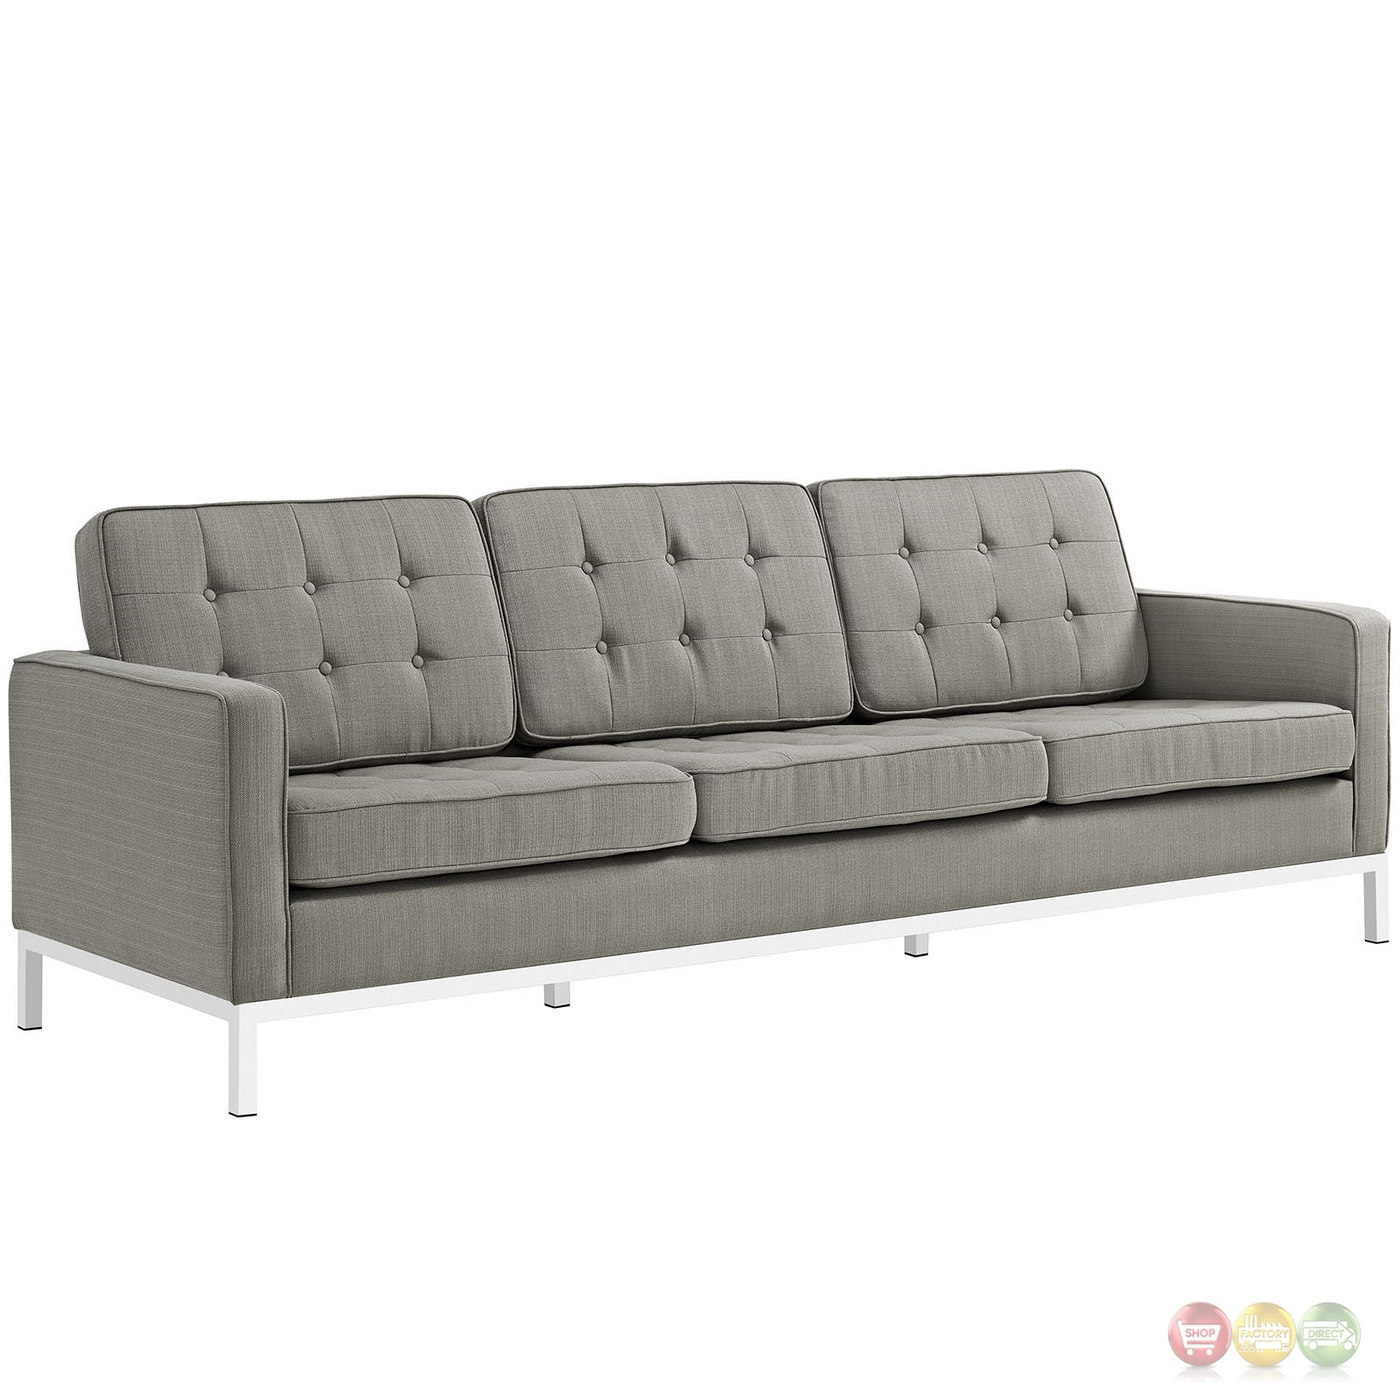 Loft modern 2pc upholstered button tufted sofa loveseat for Tufted couch set